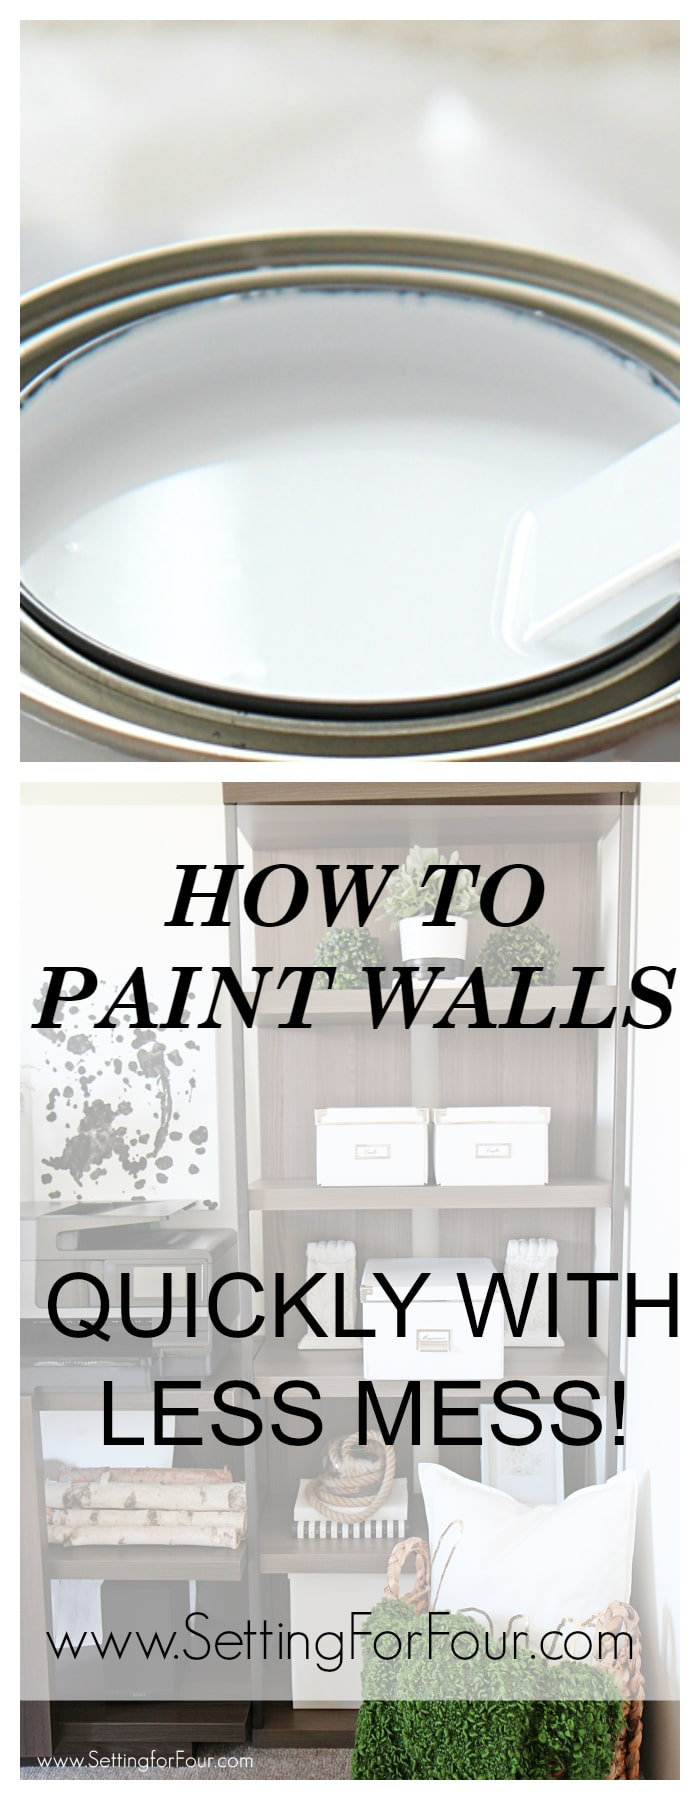 Love this helpful Painting tip! How to paint walls quickly with less mess! www.settingforfour.com